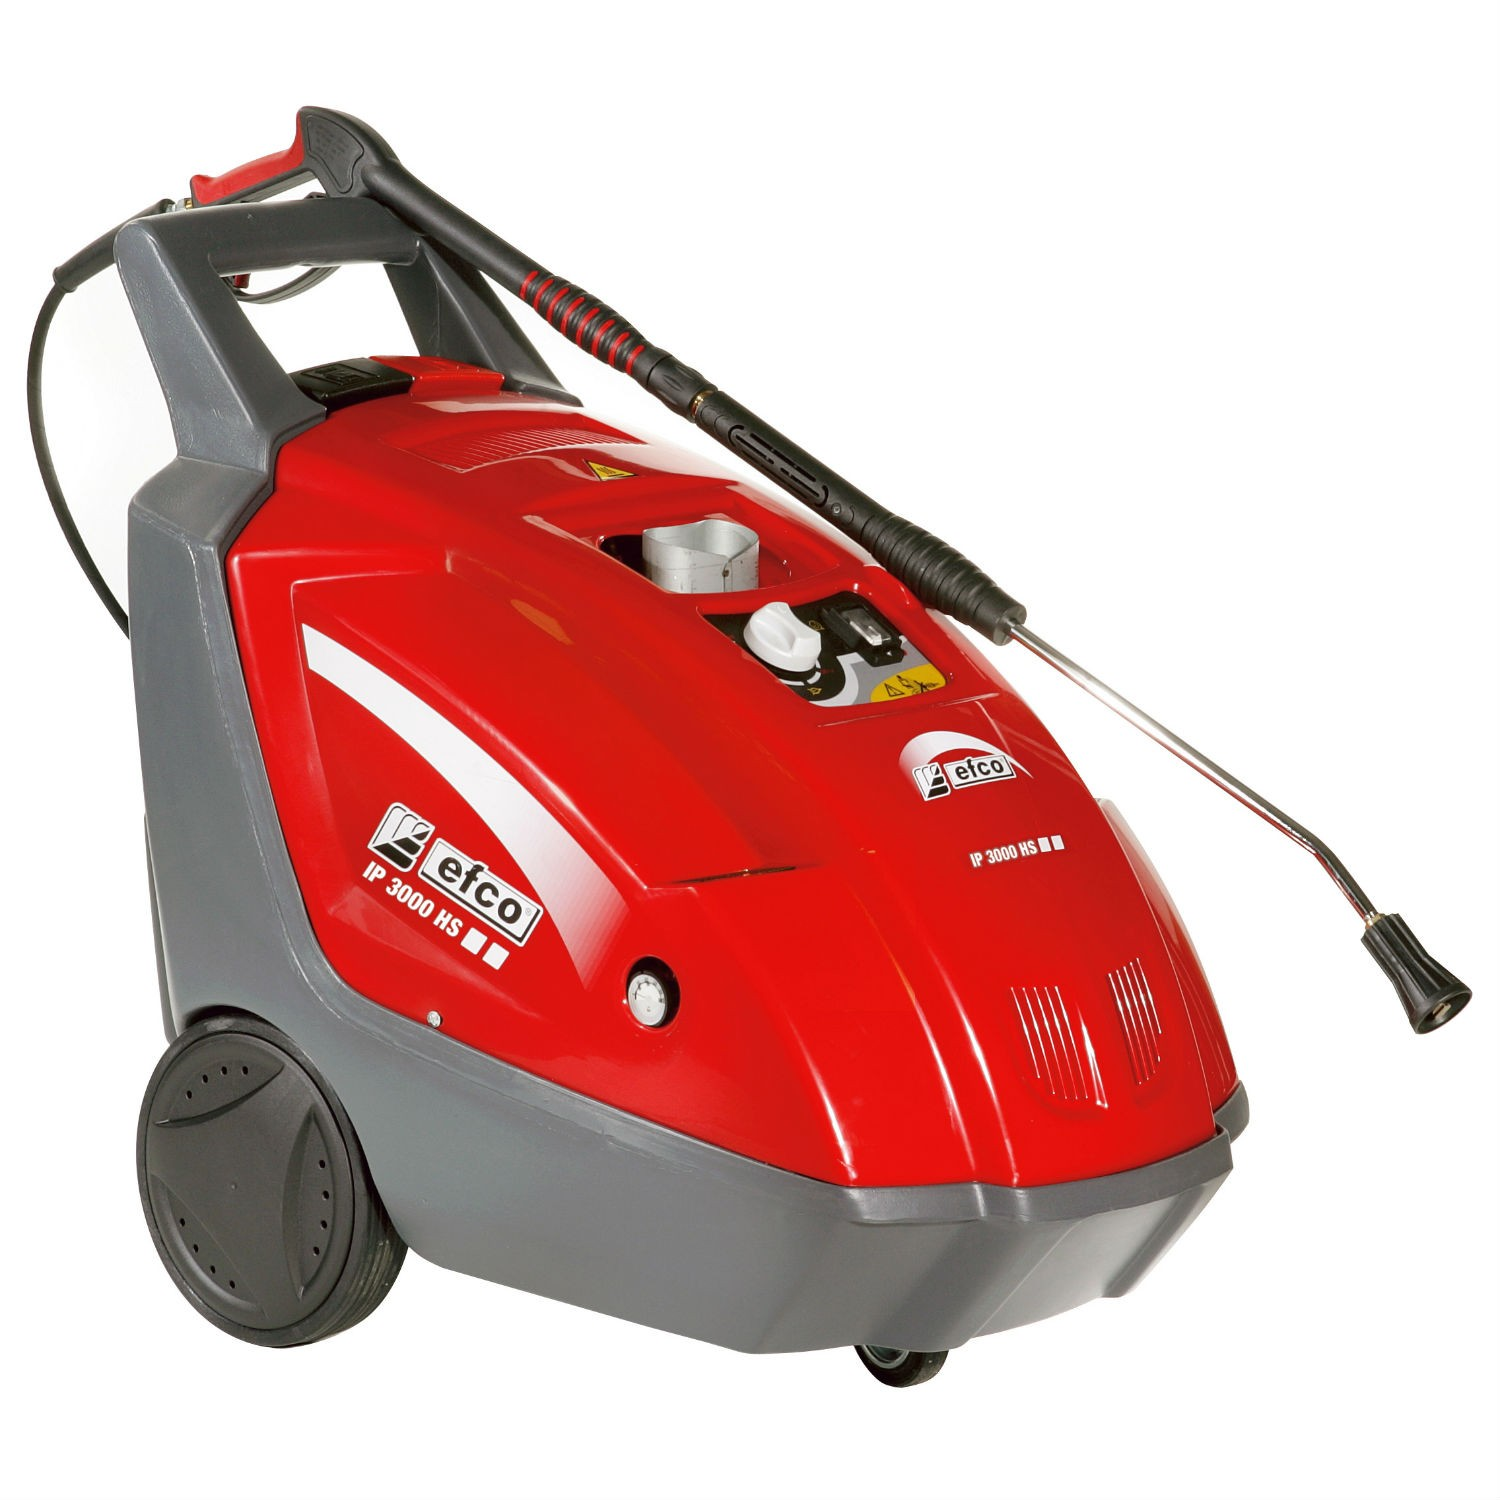 Efco Electric Hot Water Pressure Washer IP 3000 HS - Hot Jet Wash